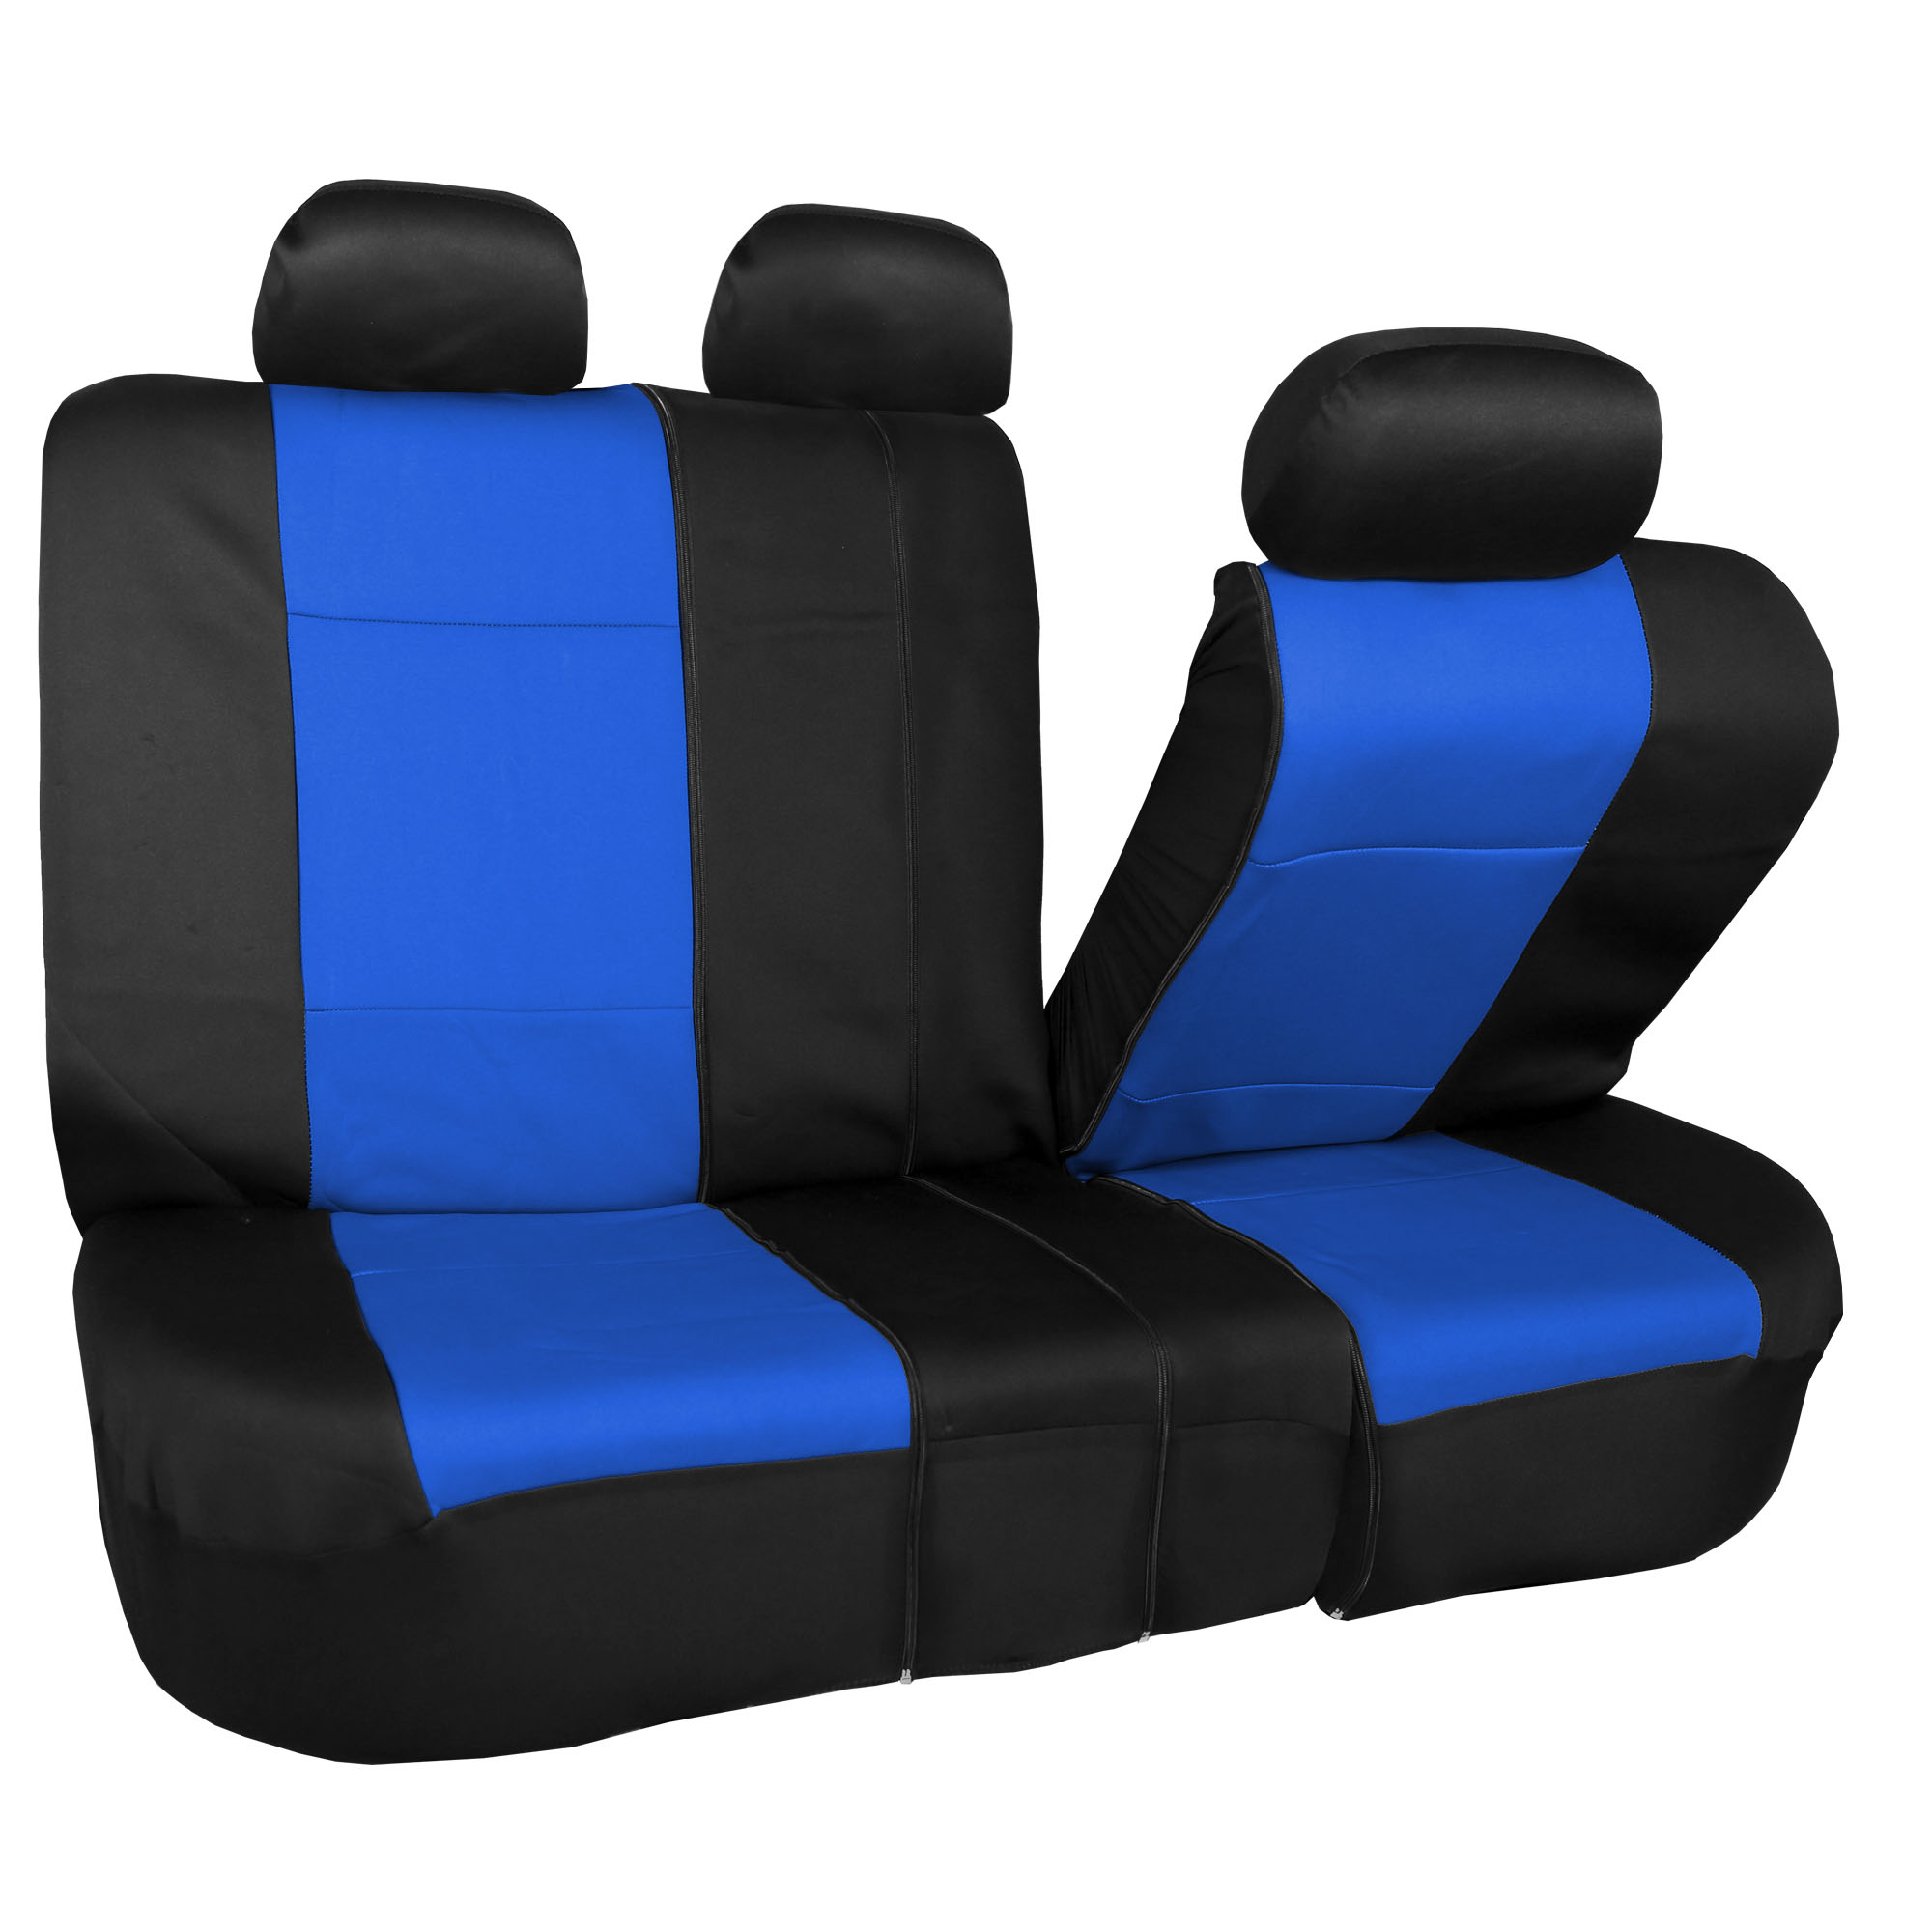 Car-Seat-Cover-Neoprene-Waterproof-Pet-Proof-Full-Set-Cover-With-Dash-Pad thumbnail 26